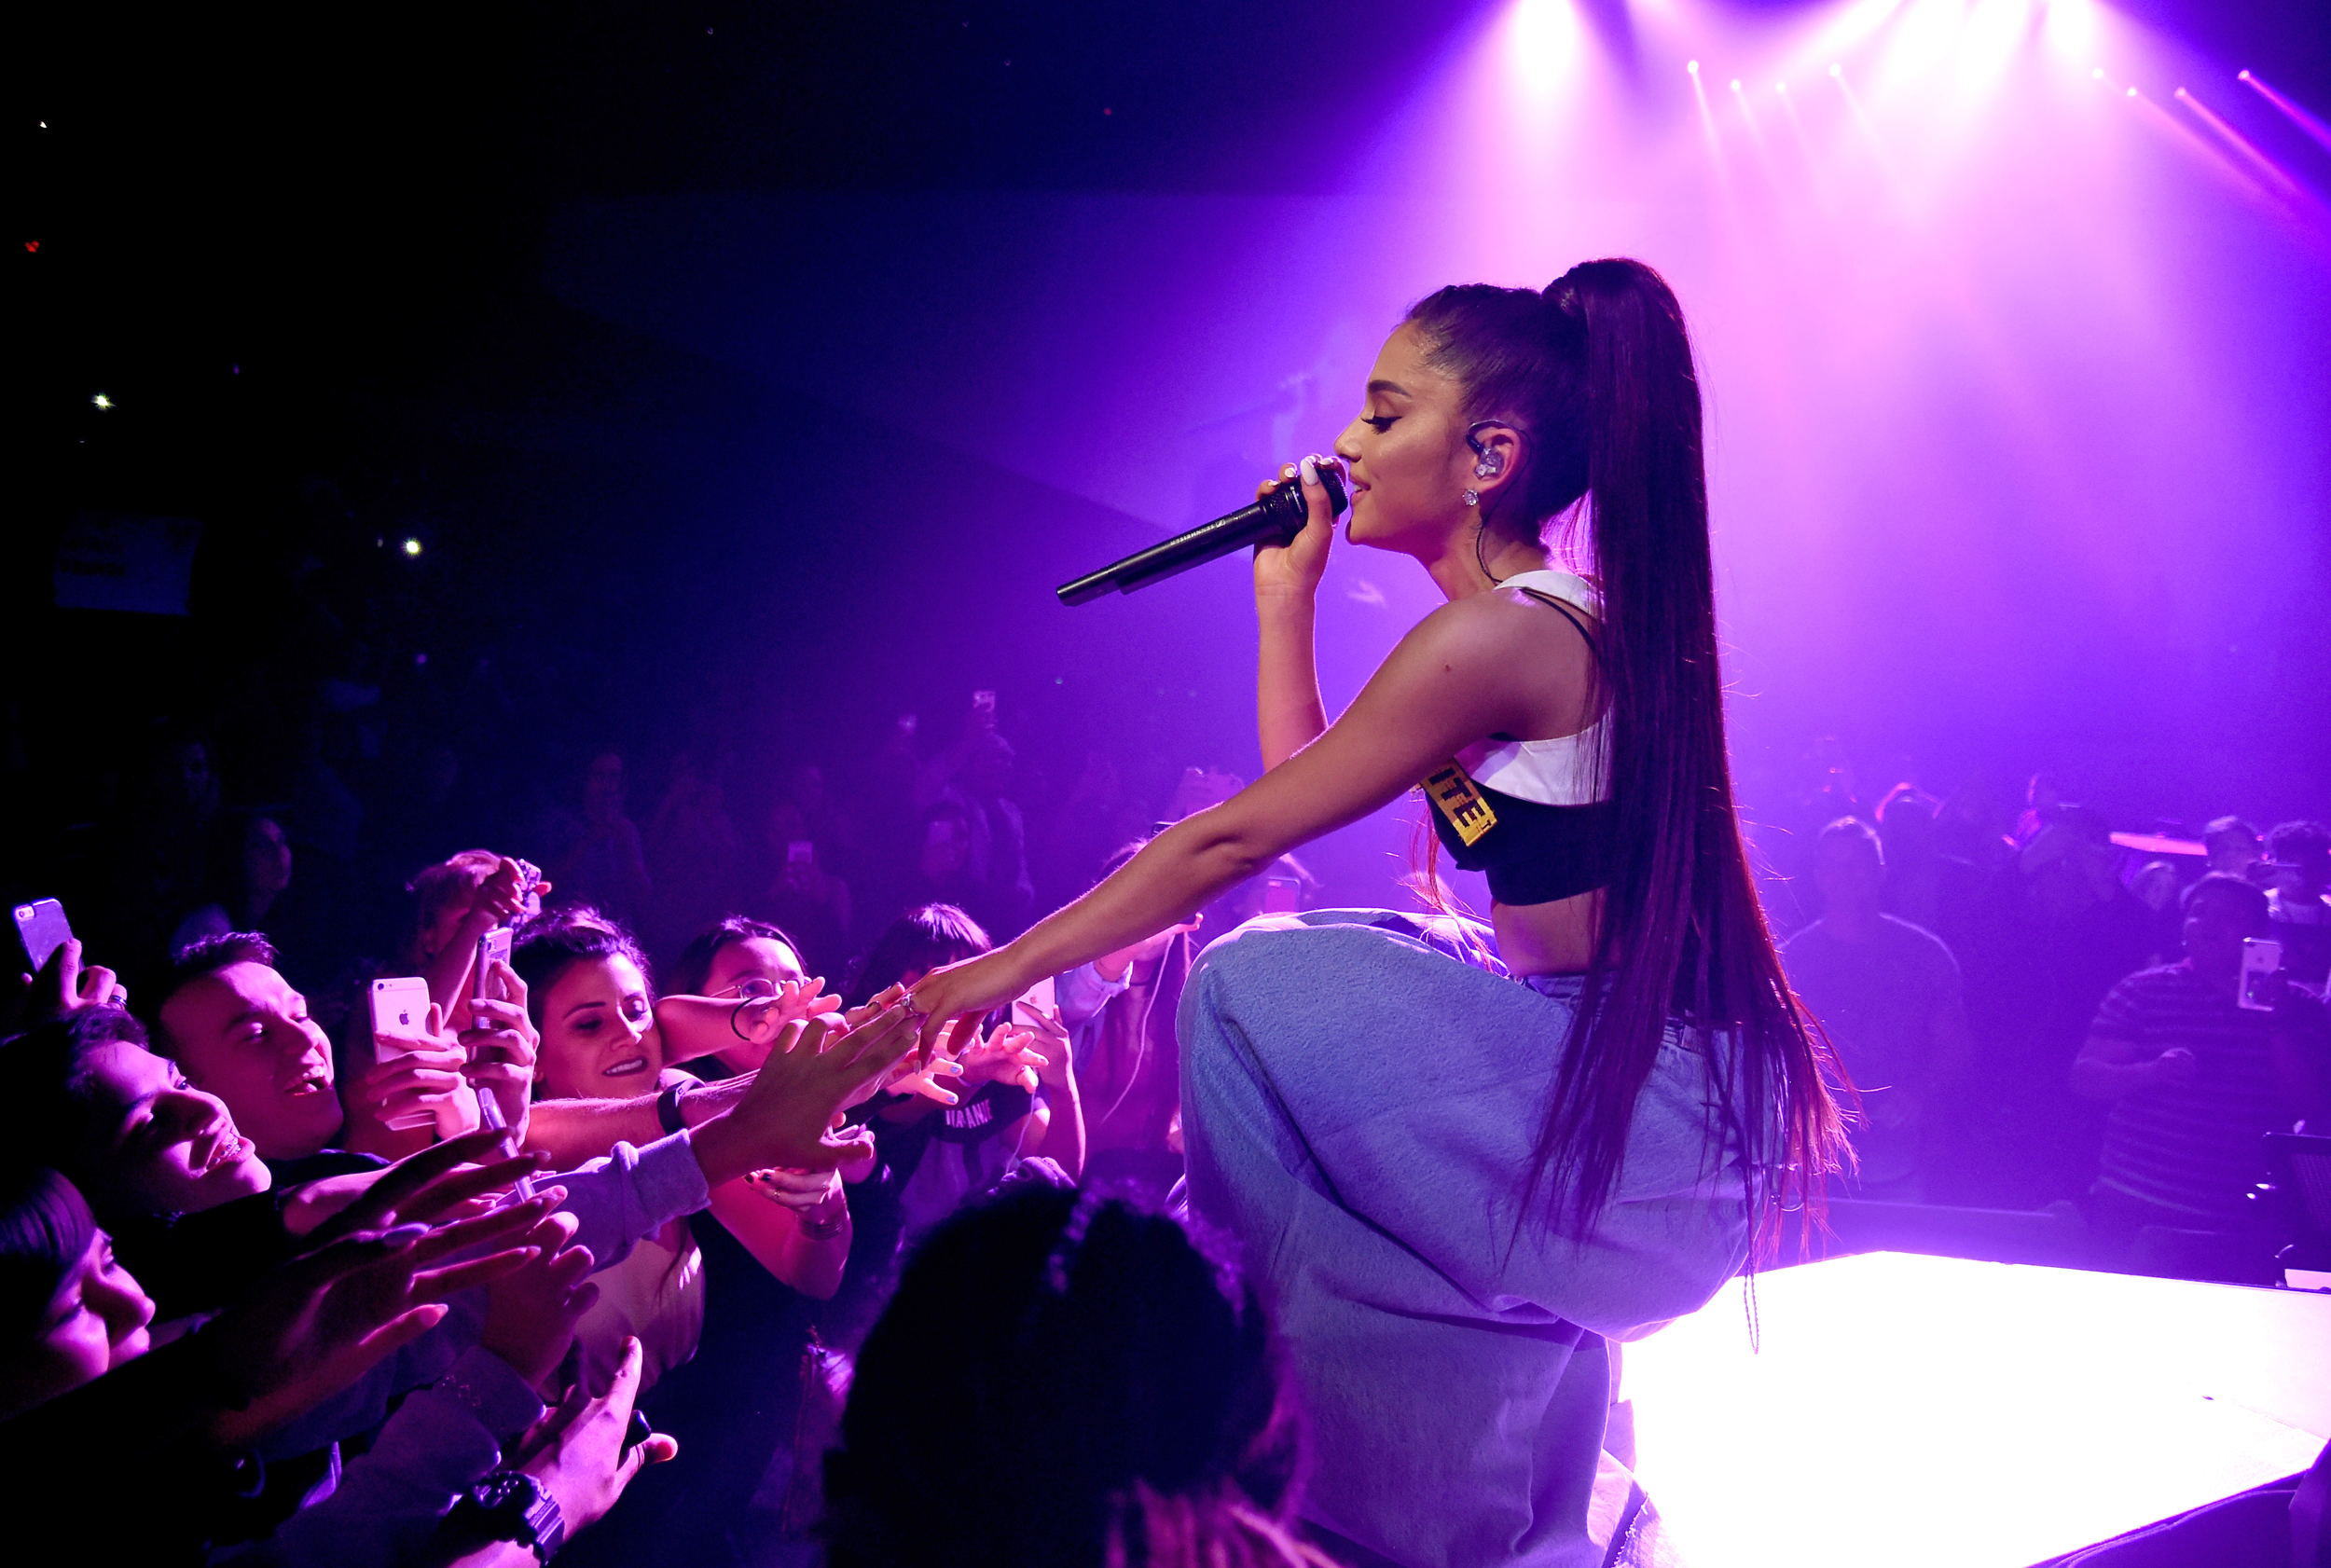 Ariana Grande Suspends Tour After Manchester Bombing